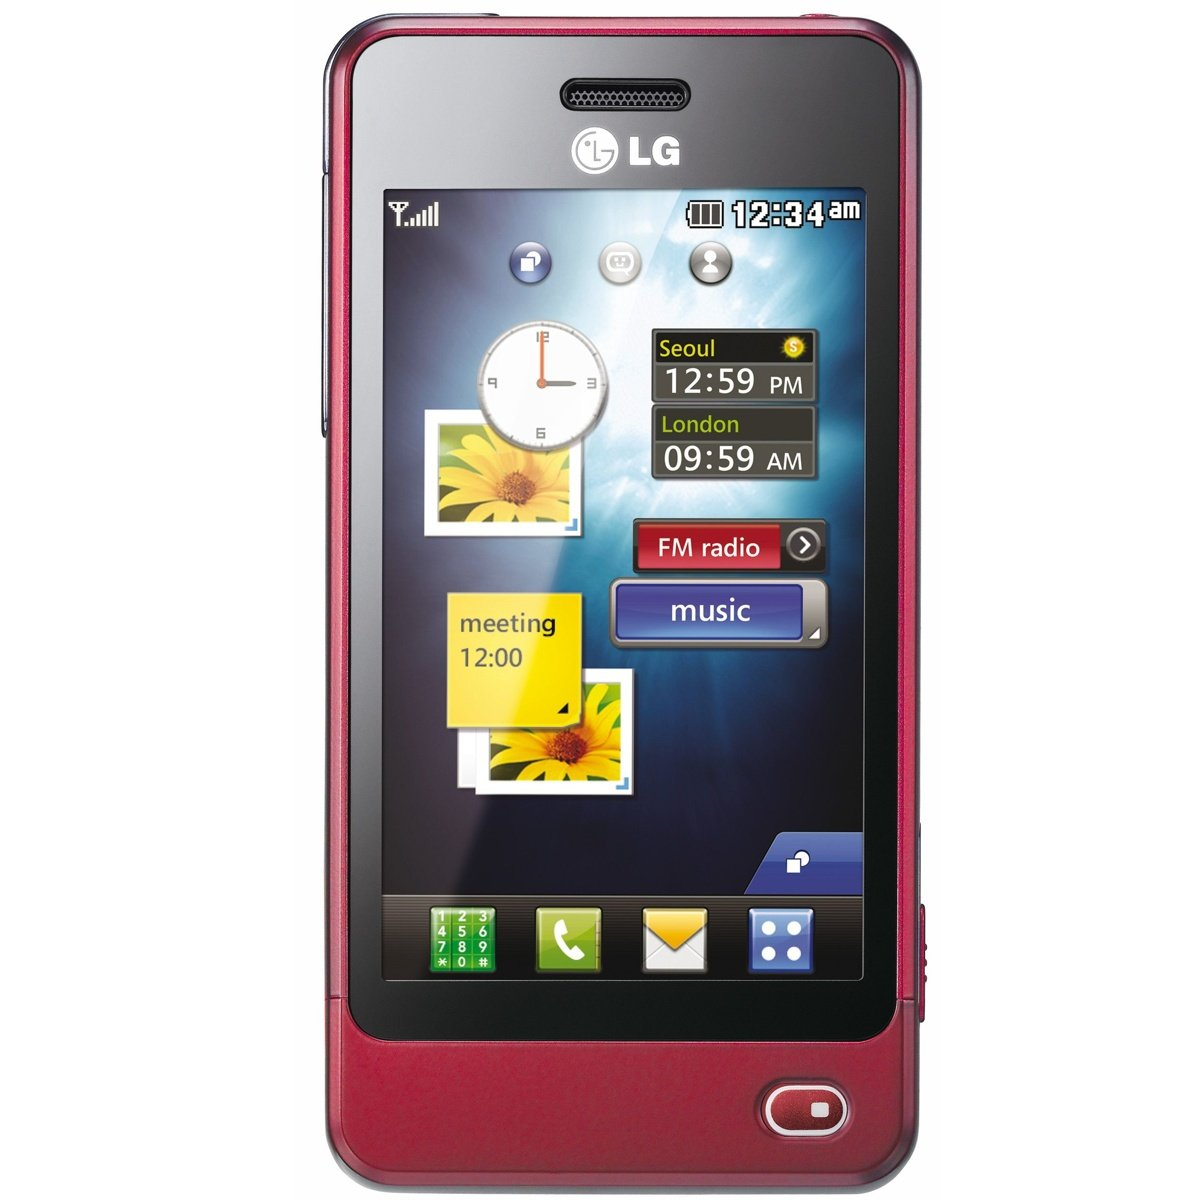 LG GD510 POP Unlocked GSM Quad-Band Cell Phone with 3 MP Camera, Touch Screen, MP3 Player and Bluetooth--International Version with No Warranty (Wine)